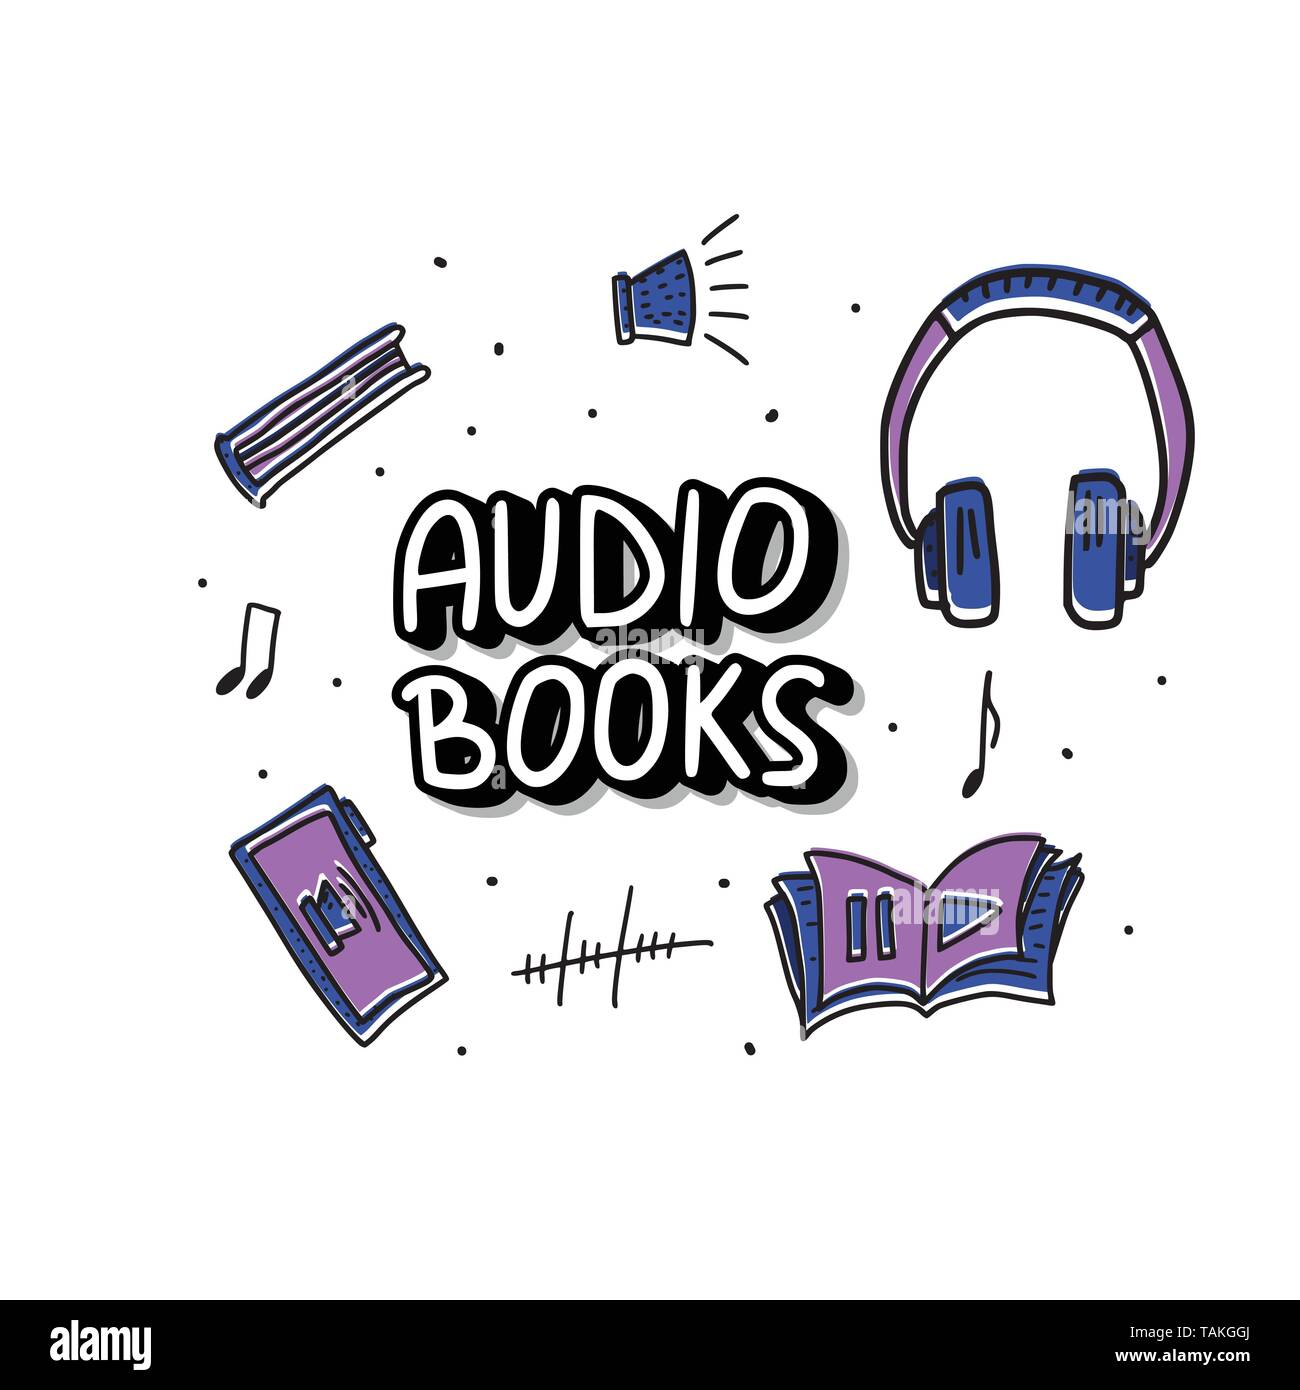 Audiobooks concept. Set of audio book symbols with lettering. Vector illustration. Stock Vector